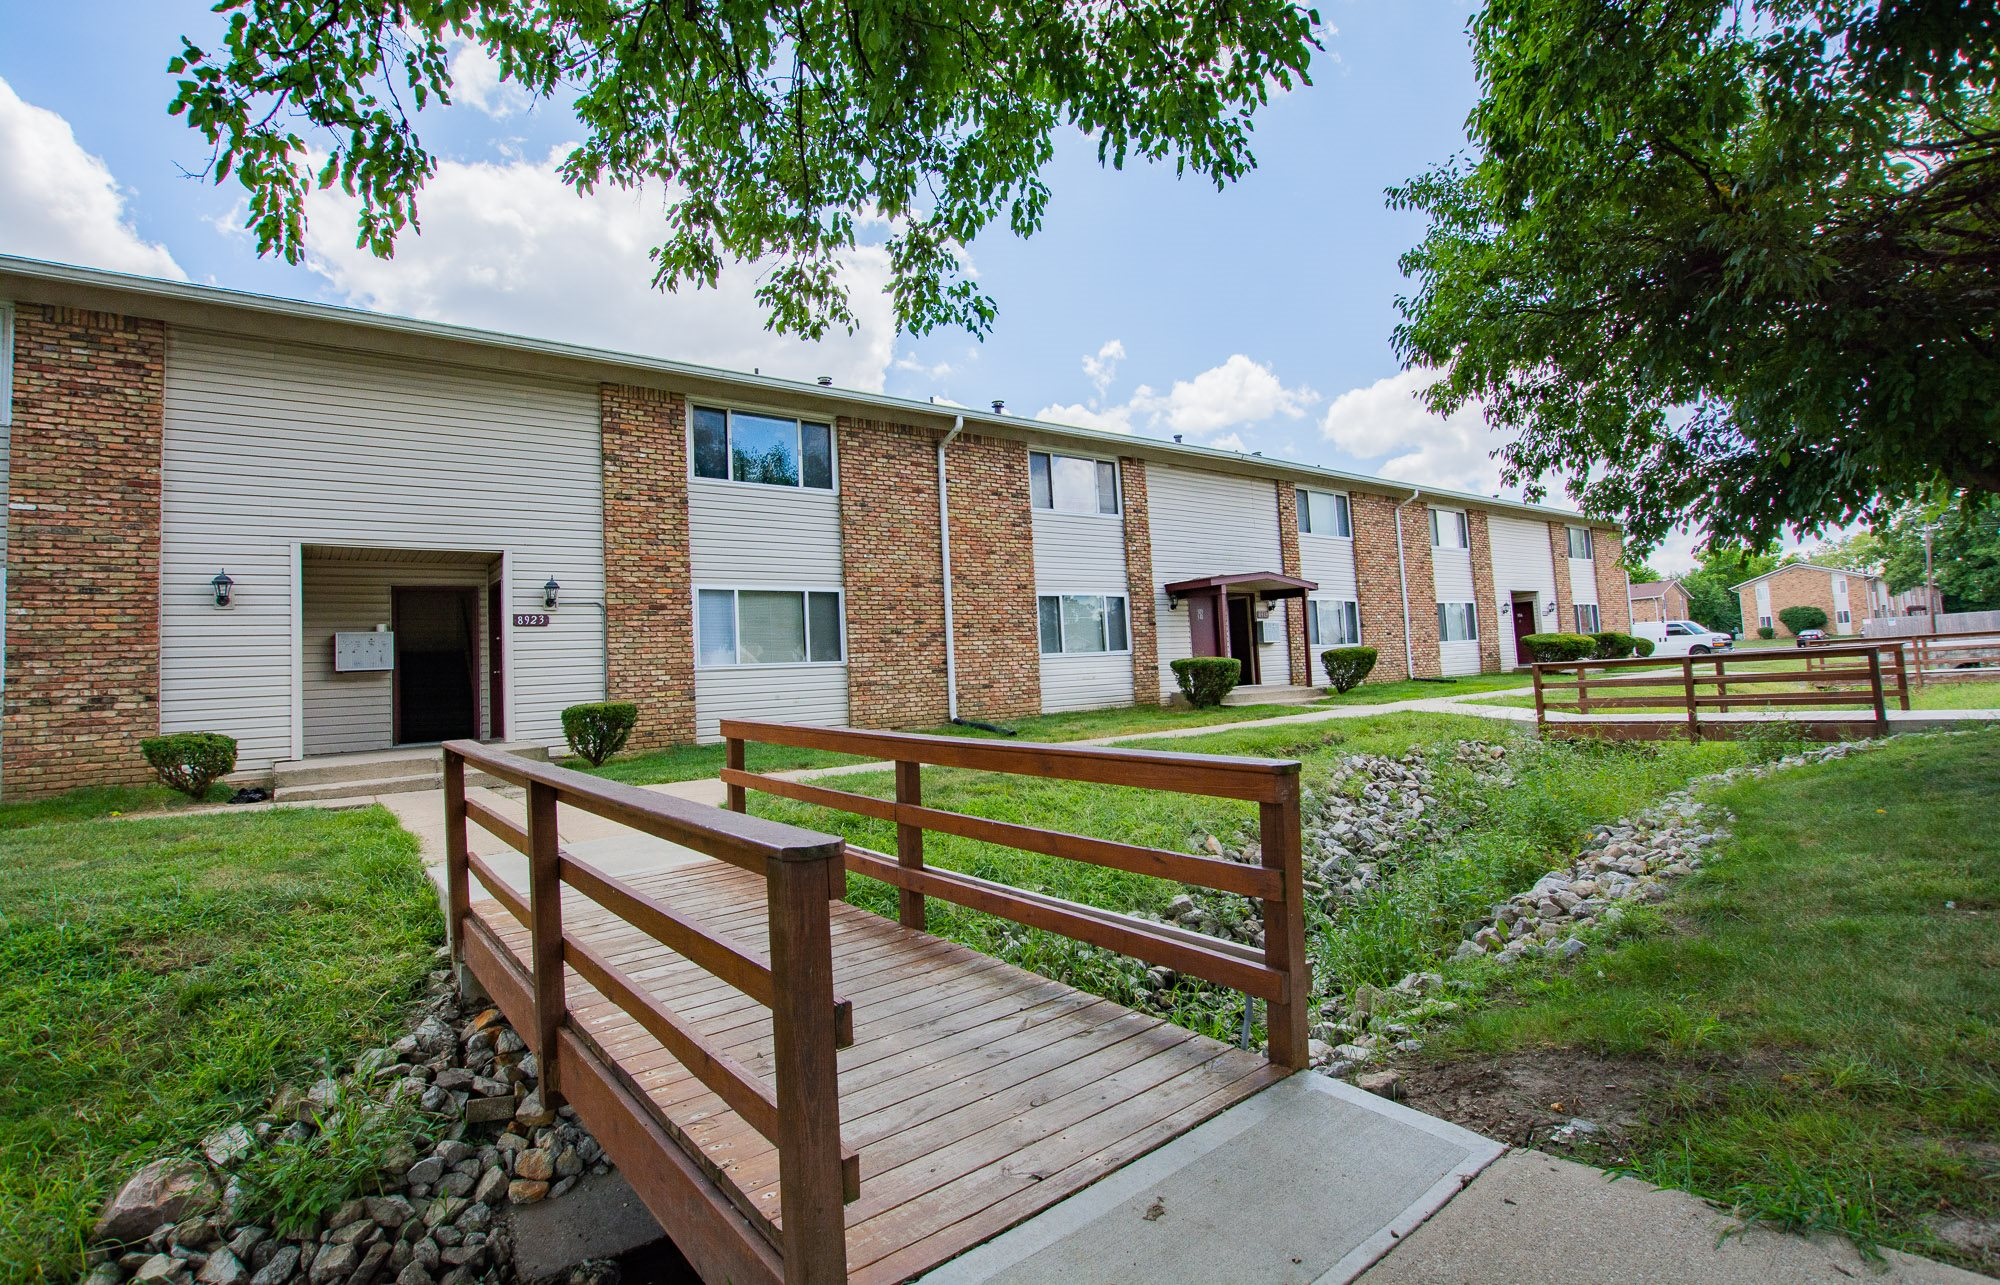 Welcome To Fountainview Apartments at Fountainview Apartments, Indiana